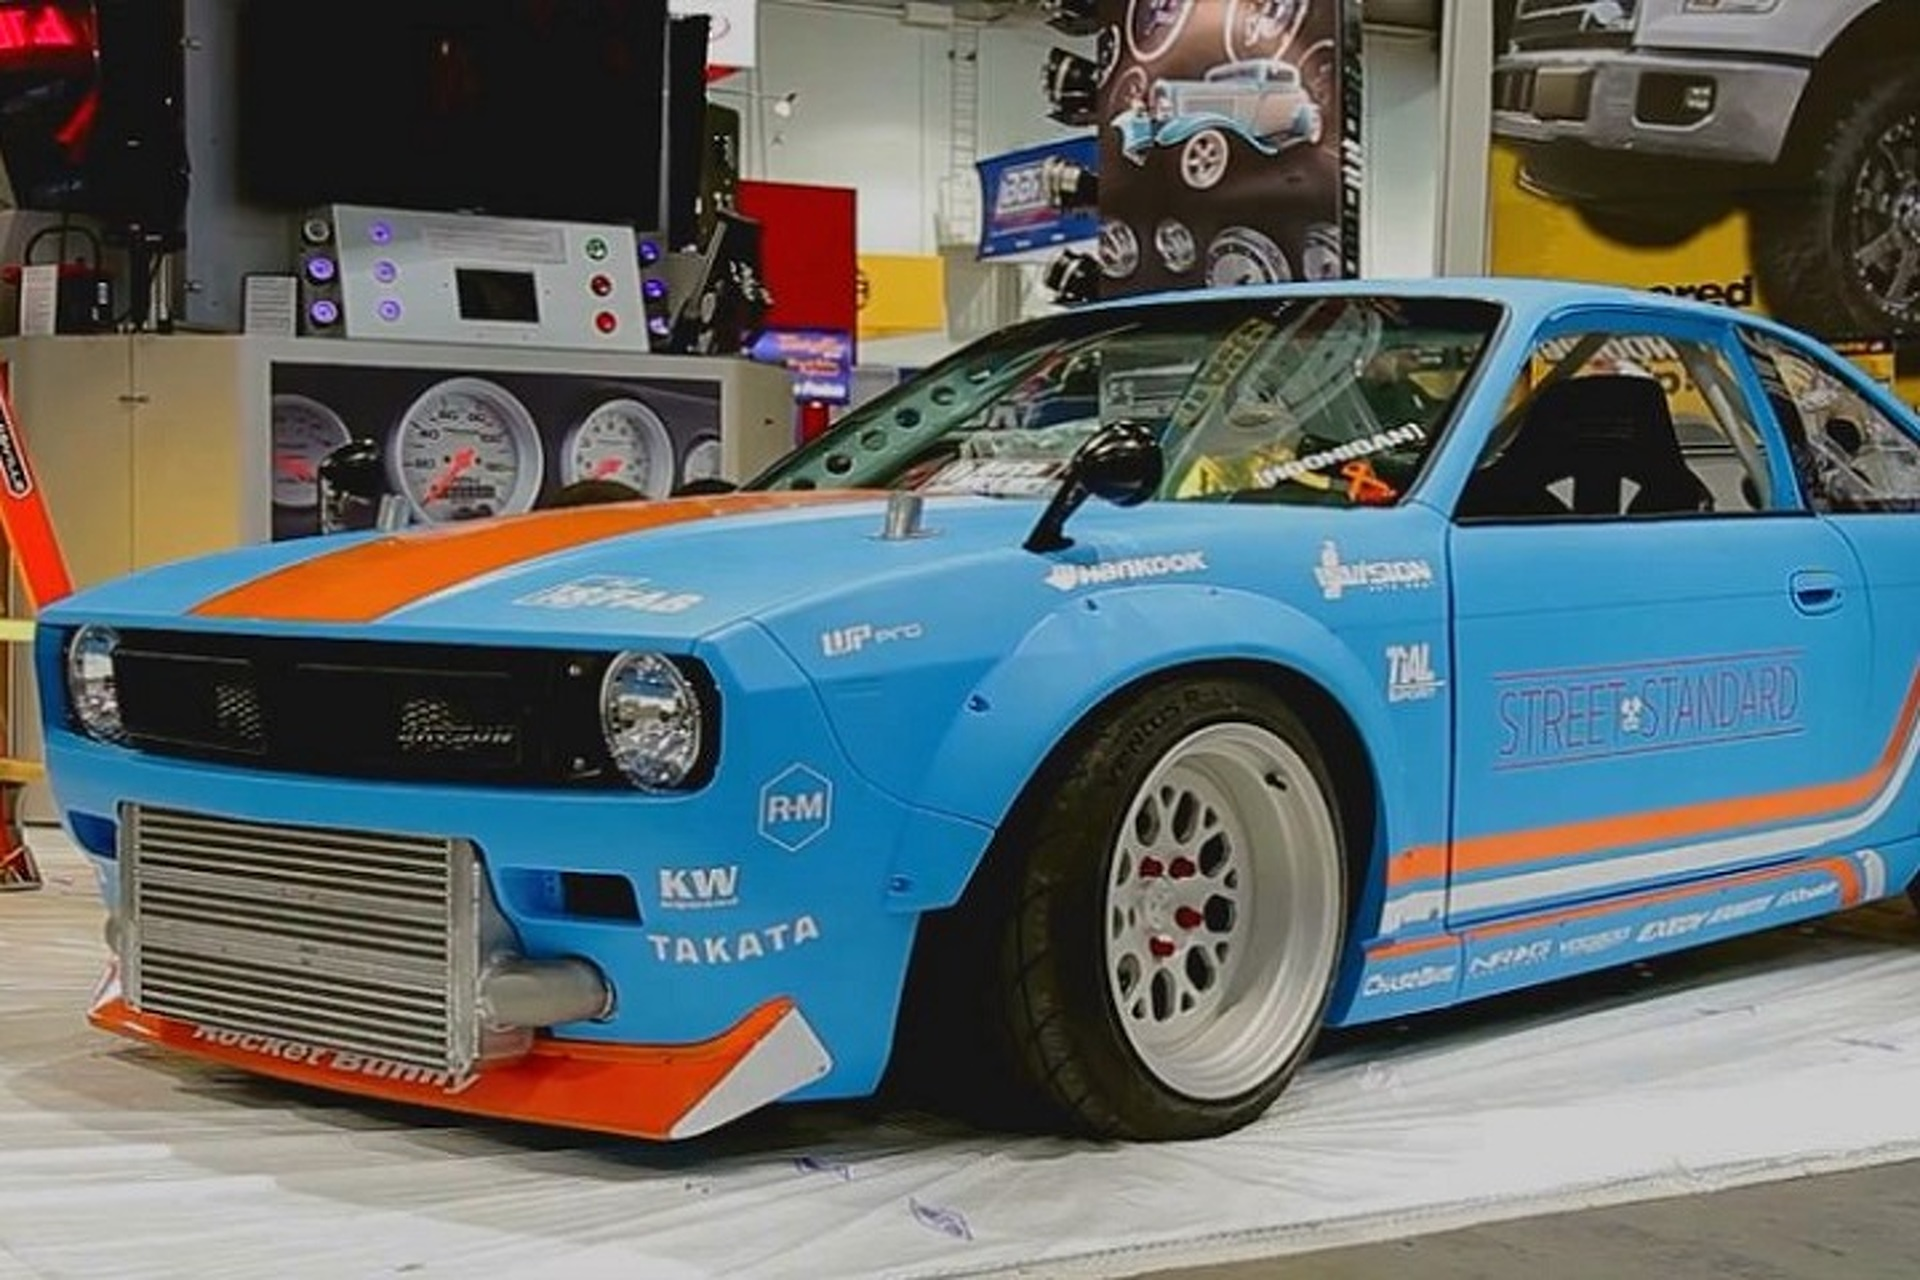 Watch This Awesome Sneak Preview Inside SEMA